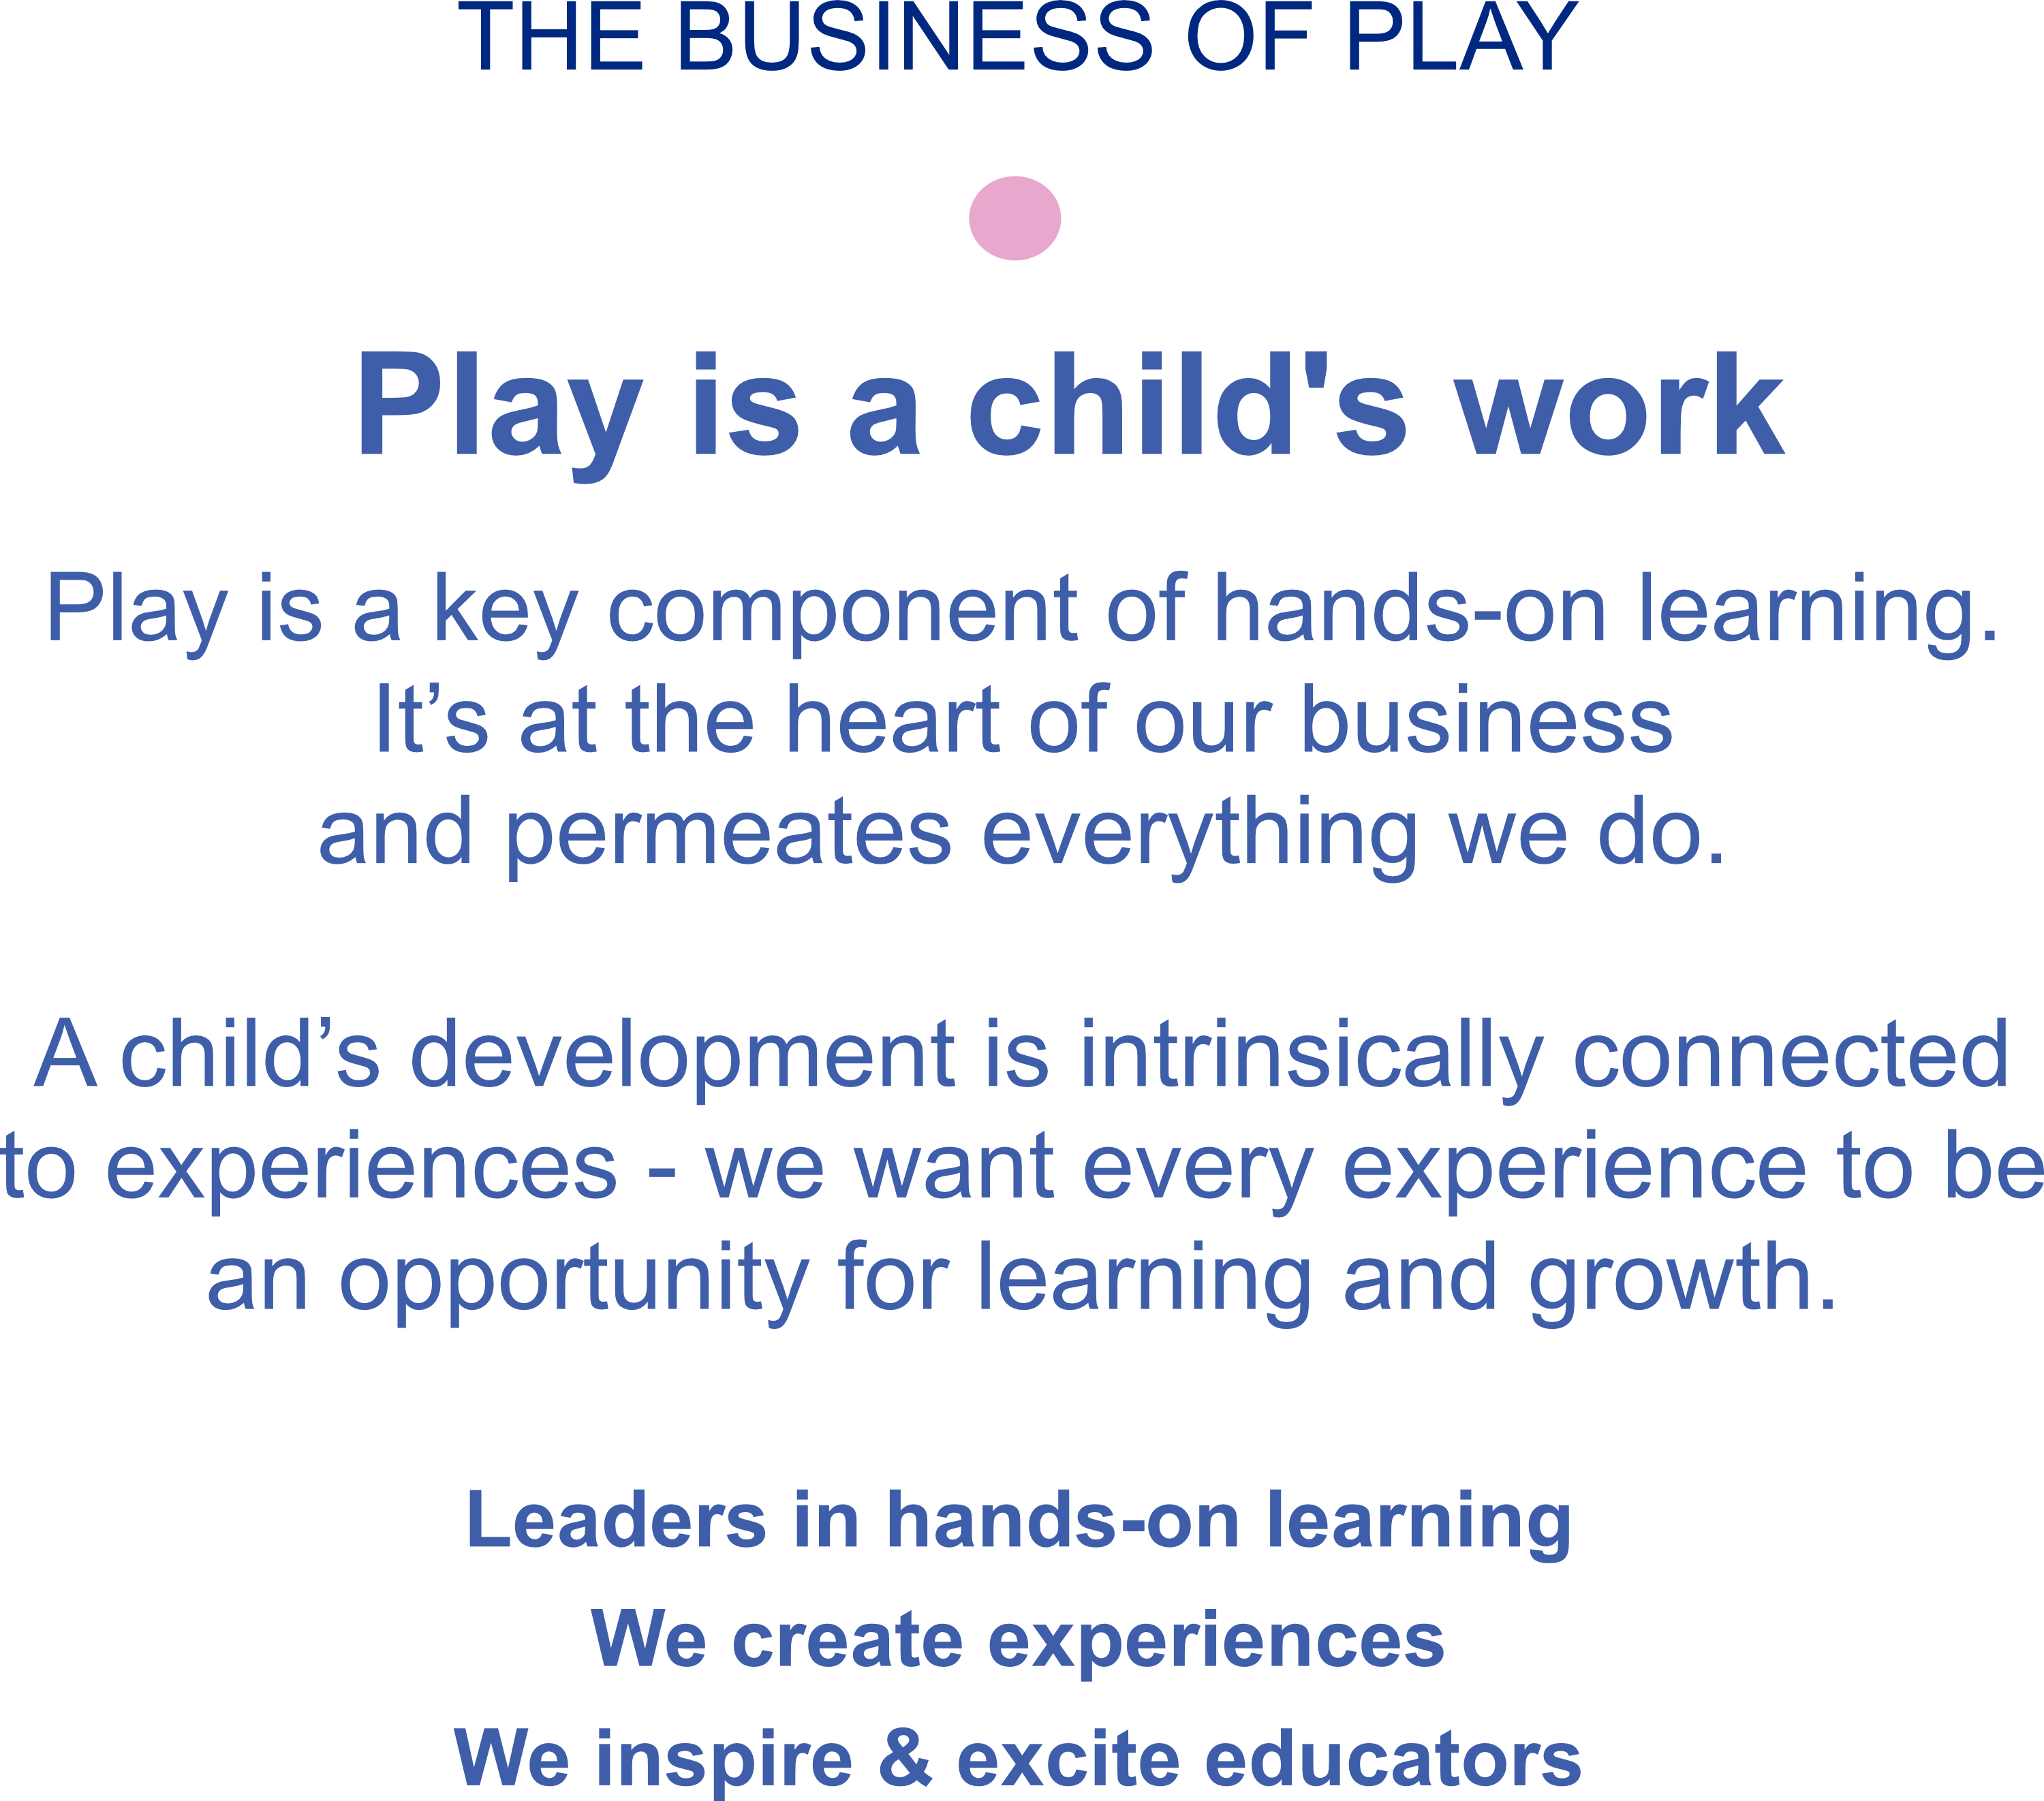 The Business of Play - play is a child's work.  Play is a component of hands-on learning. It's at the heart of what we do. A child's development is intrinsically connected to experiences - we want every experience to be an opportunity for learning & growth.  Leaders in hands-on learning. We create experiences. We inspire & excite educators.